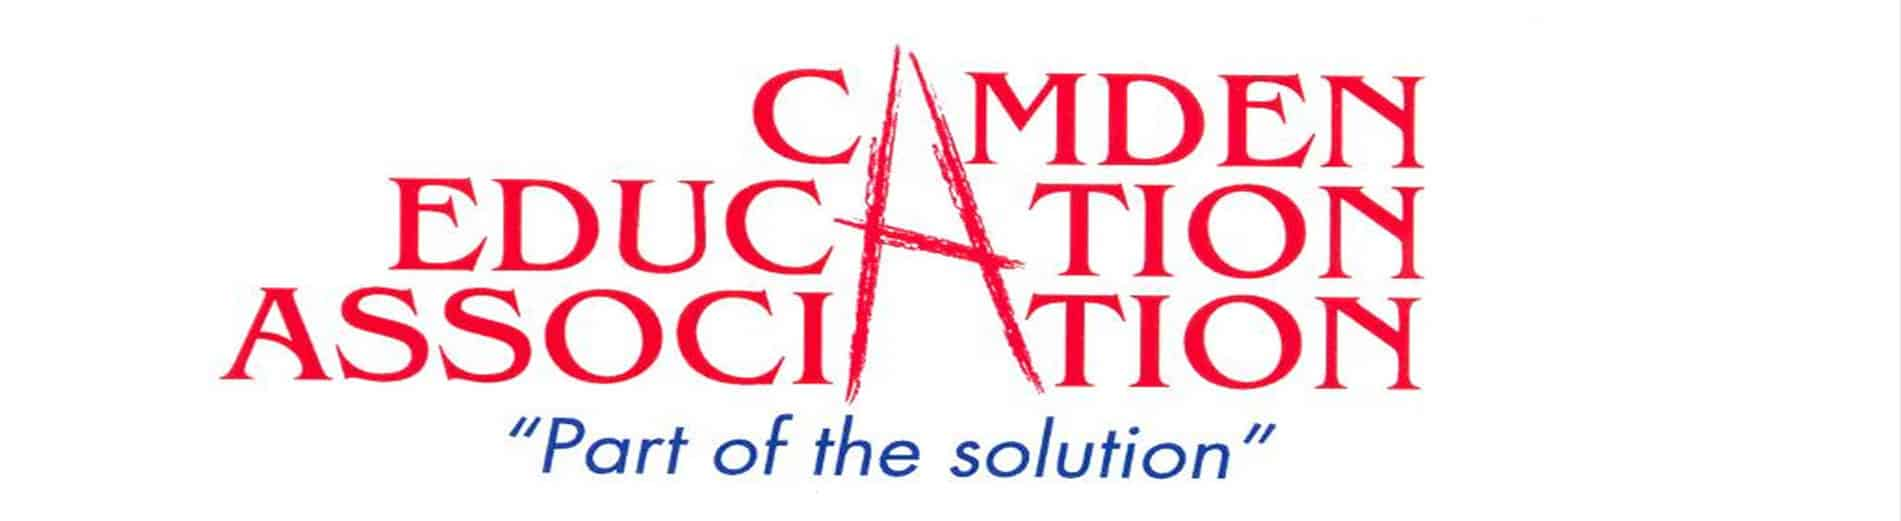 Camden Education Association